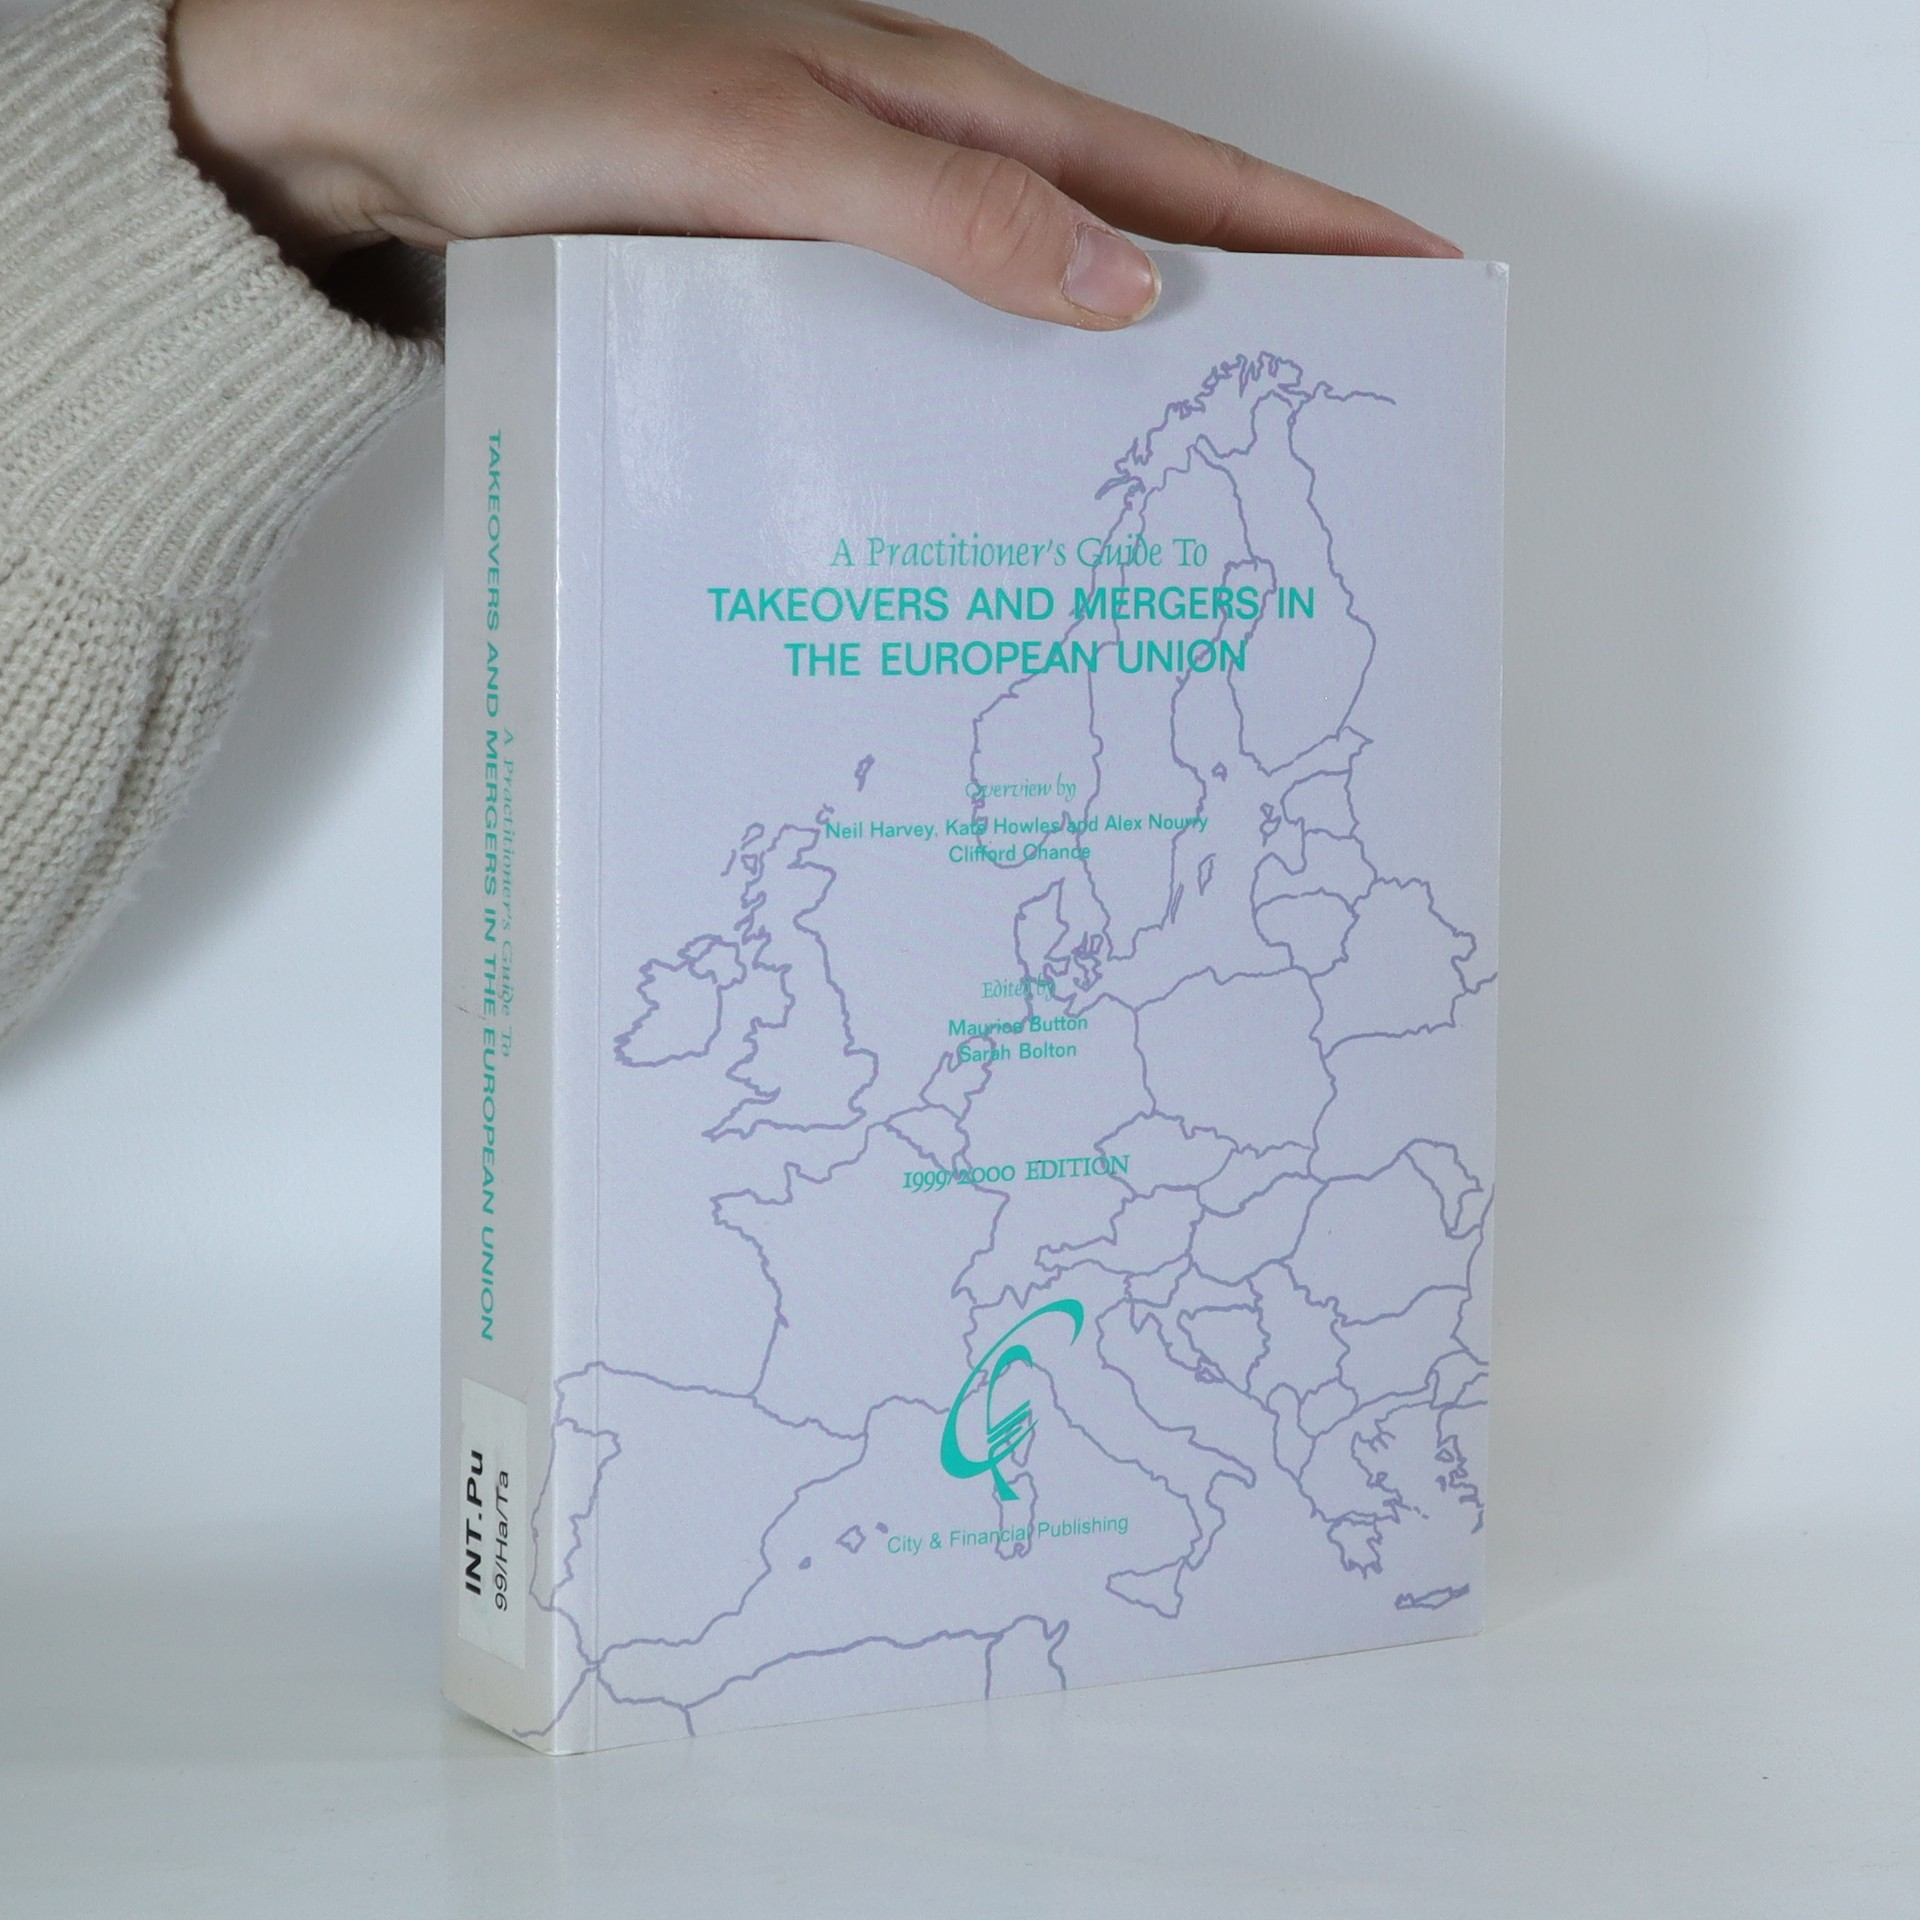 antikvární kniha A Practitioner's Guide to Takeovers and Mergers in European Union, 2000